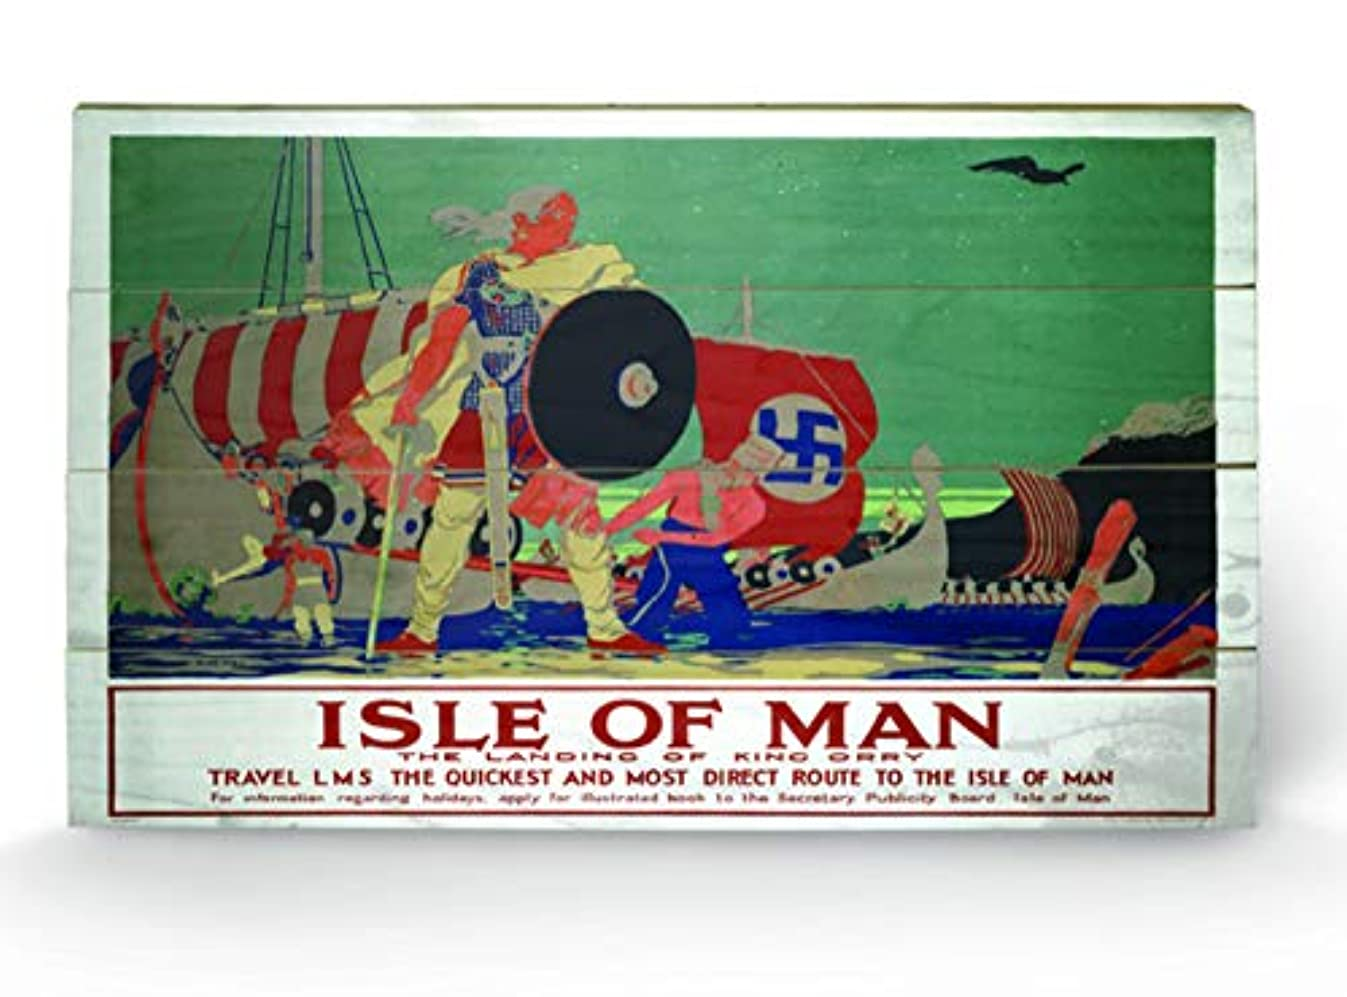 ISLE OF MAN Images & Pictures, Wooden wall art, Size: 45 x 76cm (18 x 30.4 inches)